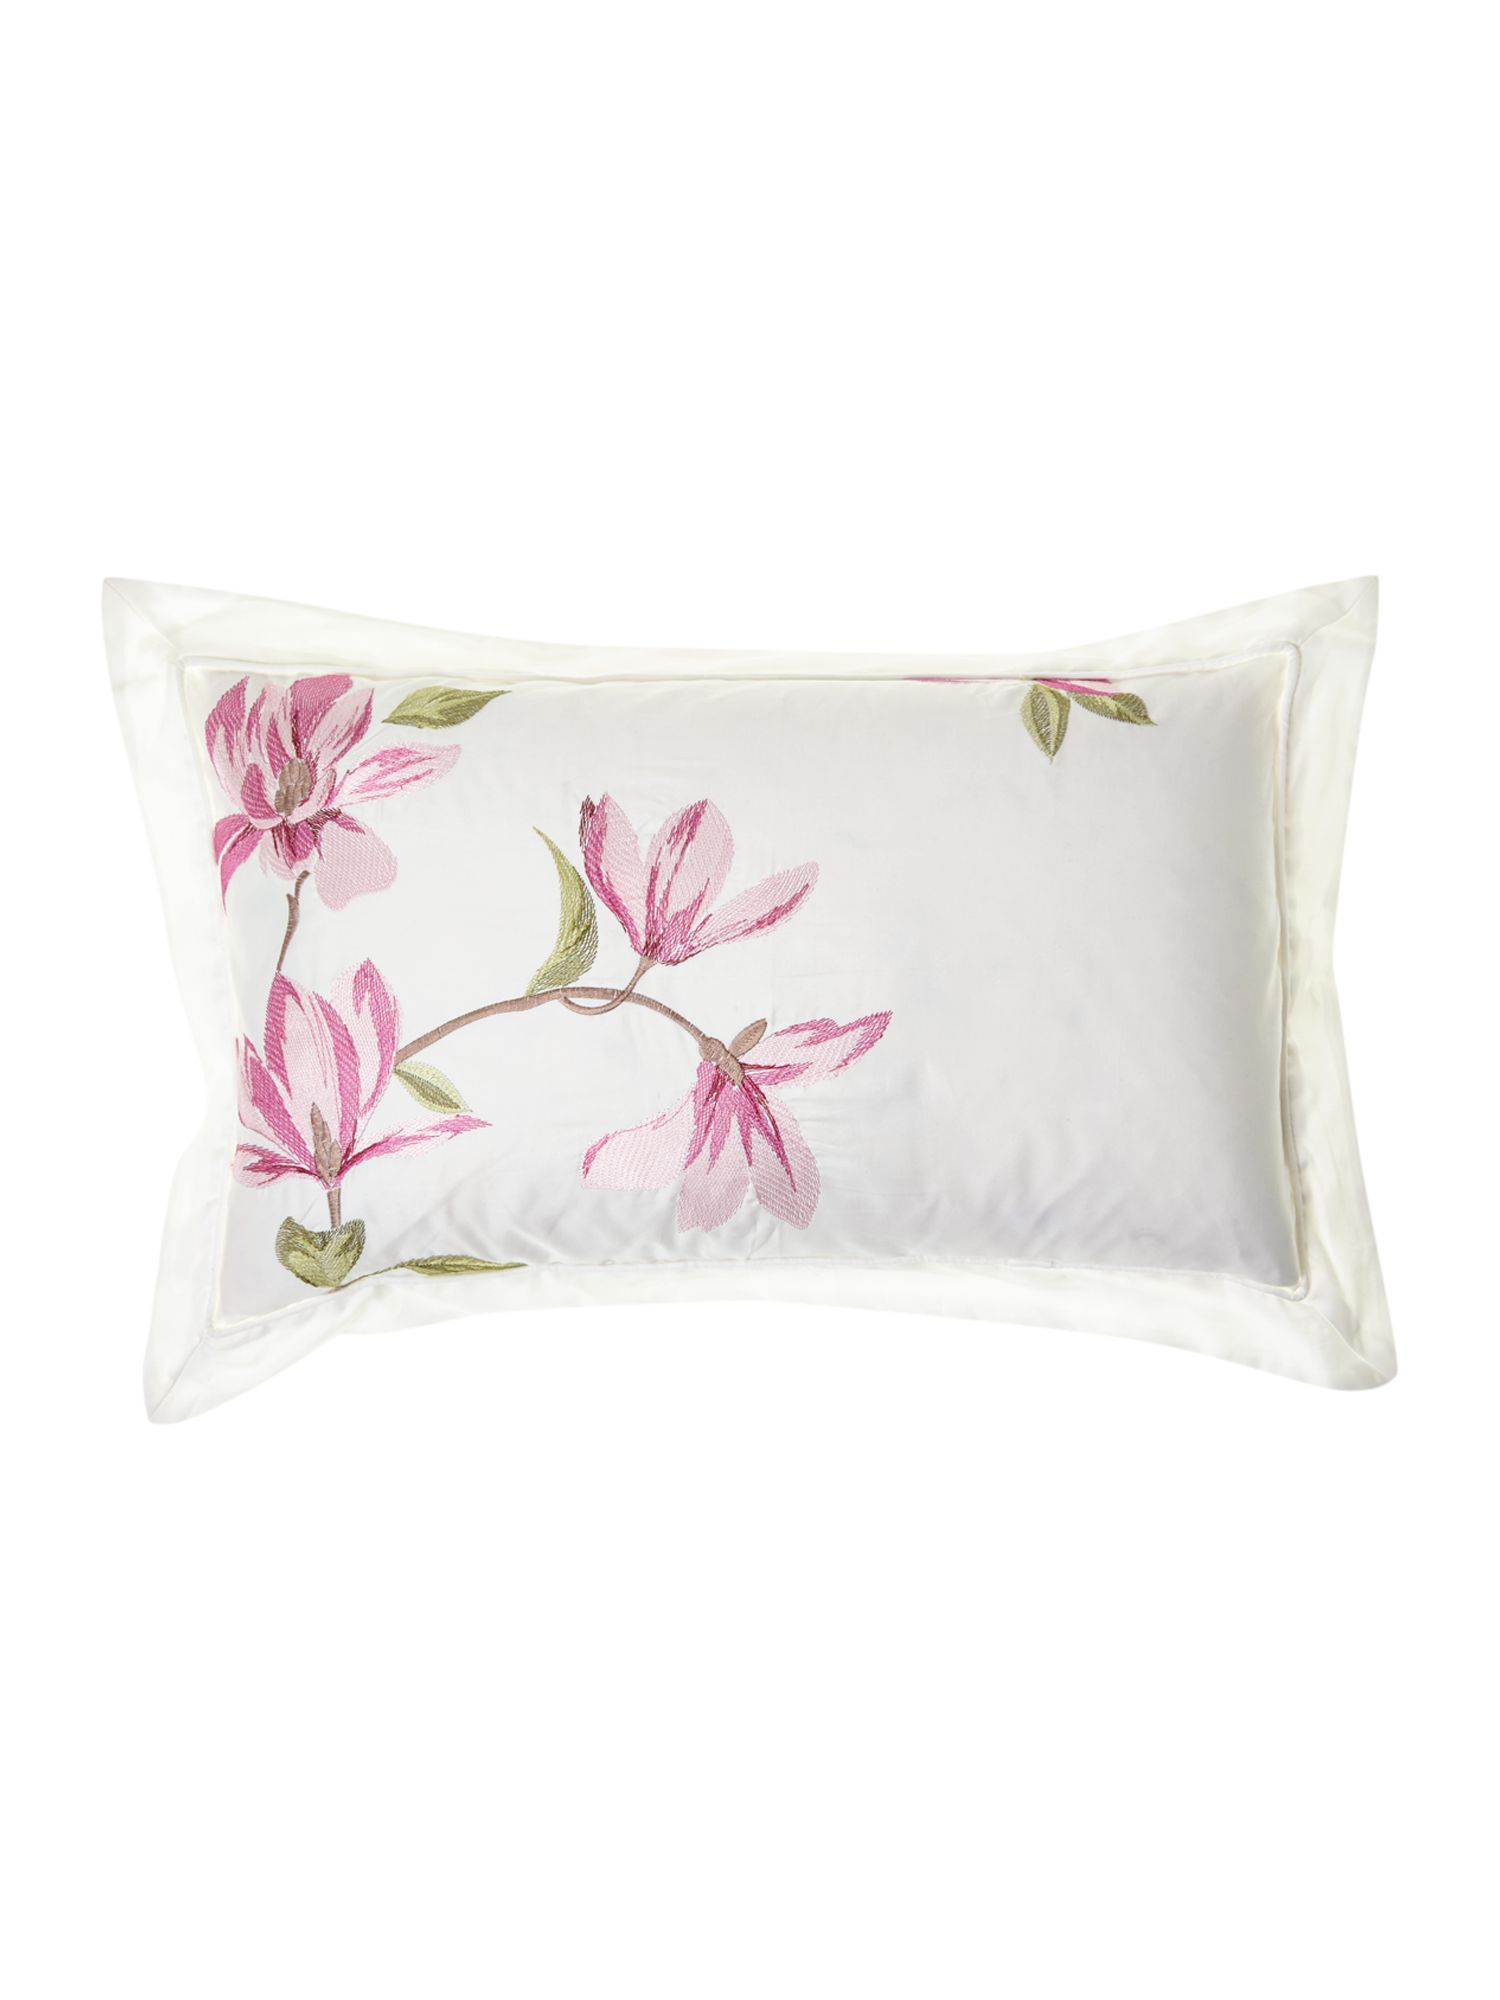 Magnolia boudoir cushion